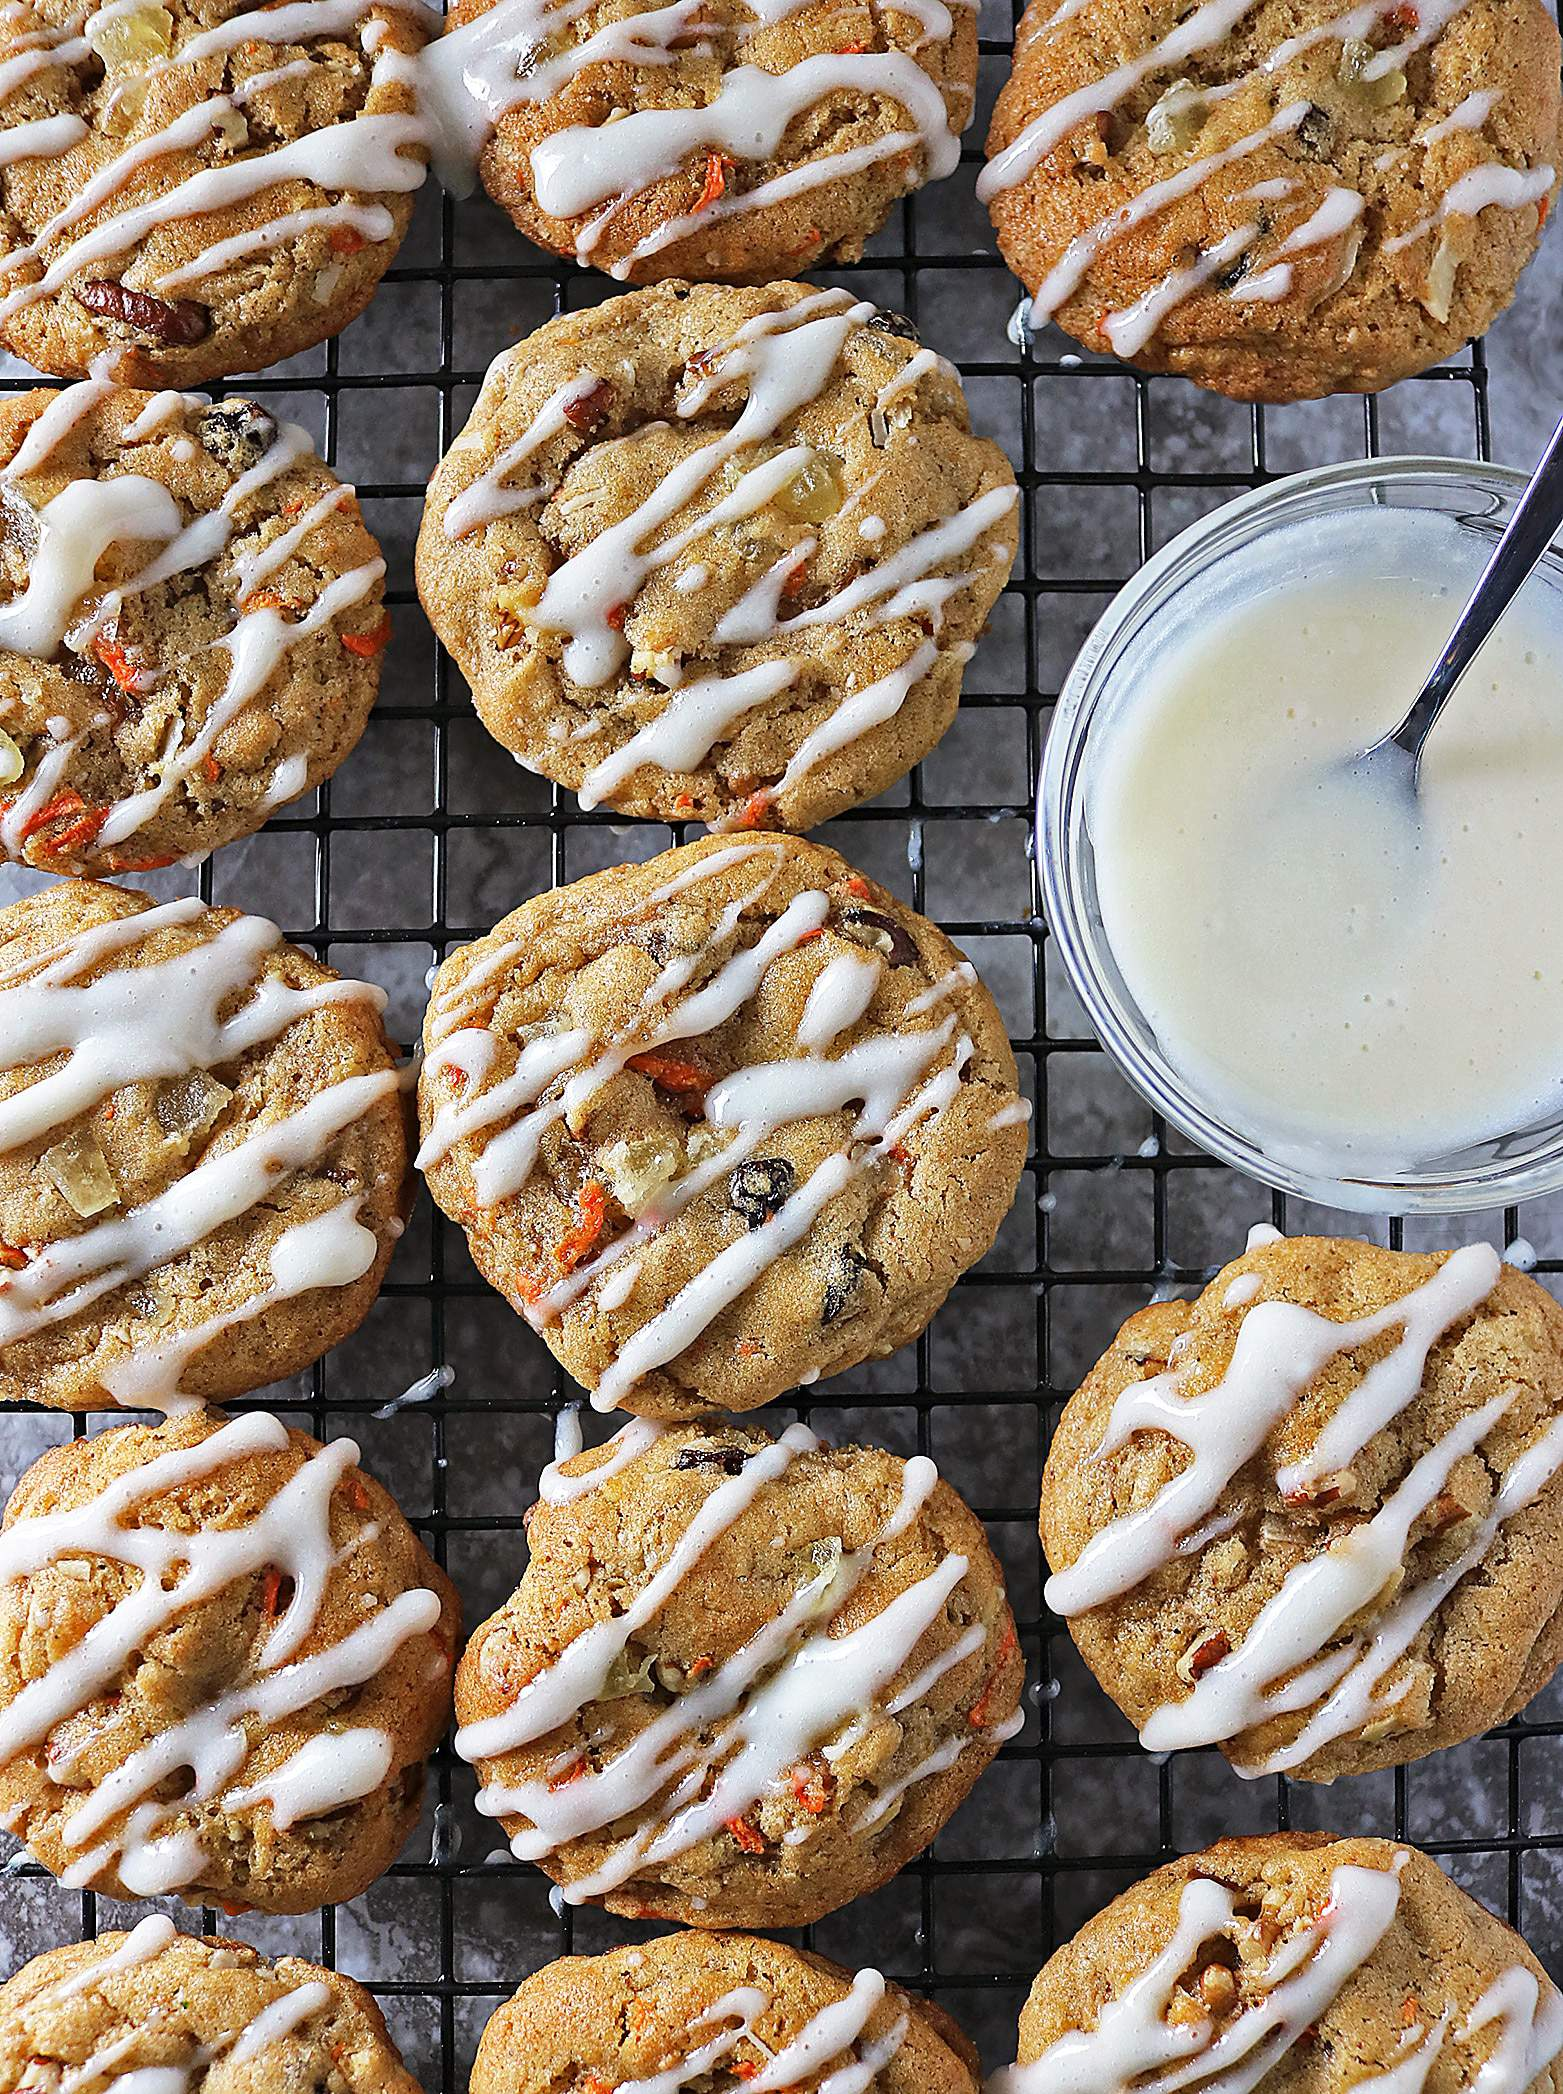 Chock full of carrots, walnuts, raisins, cardamom, cinnamon and candied pineapple, these Carrot Cake Cookies with Cream Cheese Drizzle are heavy on flavor.